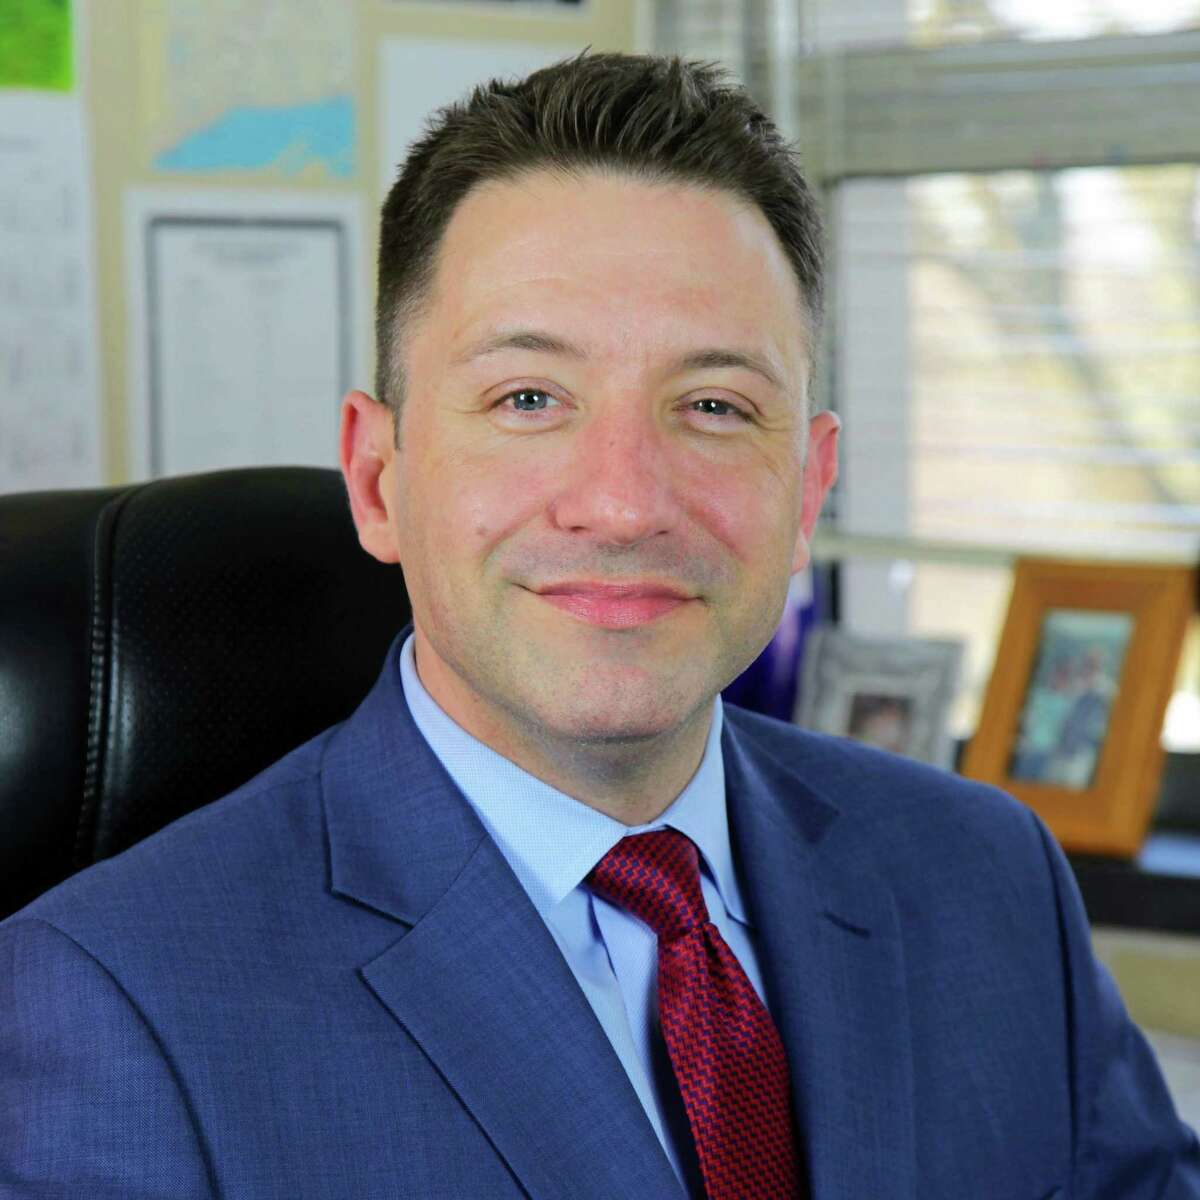 City of Middletown General Counsel Brig Smith